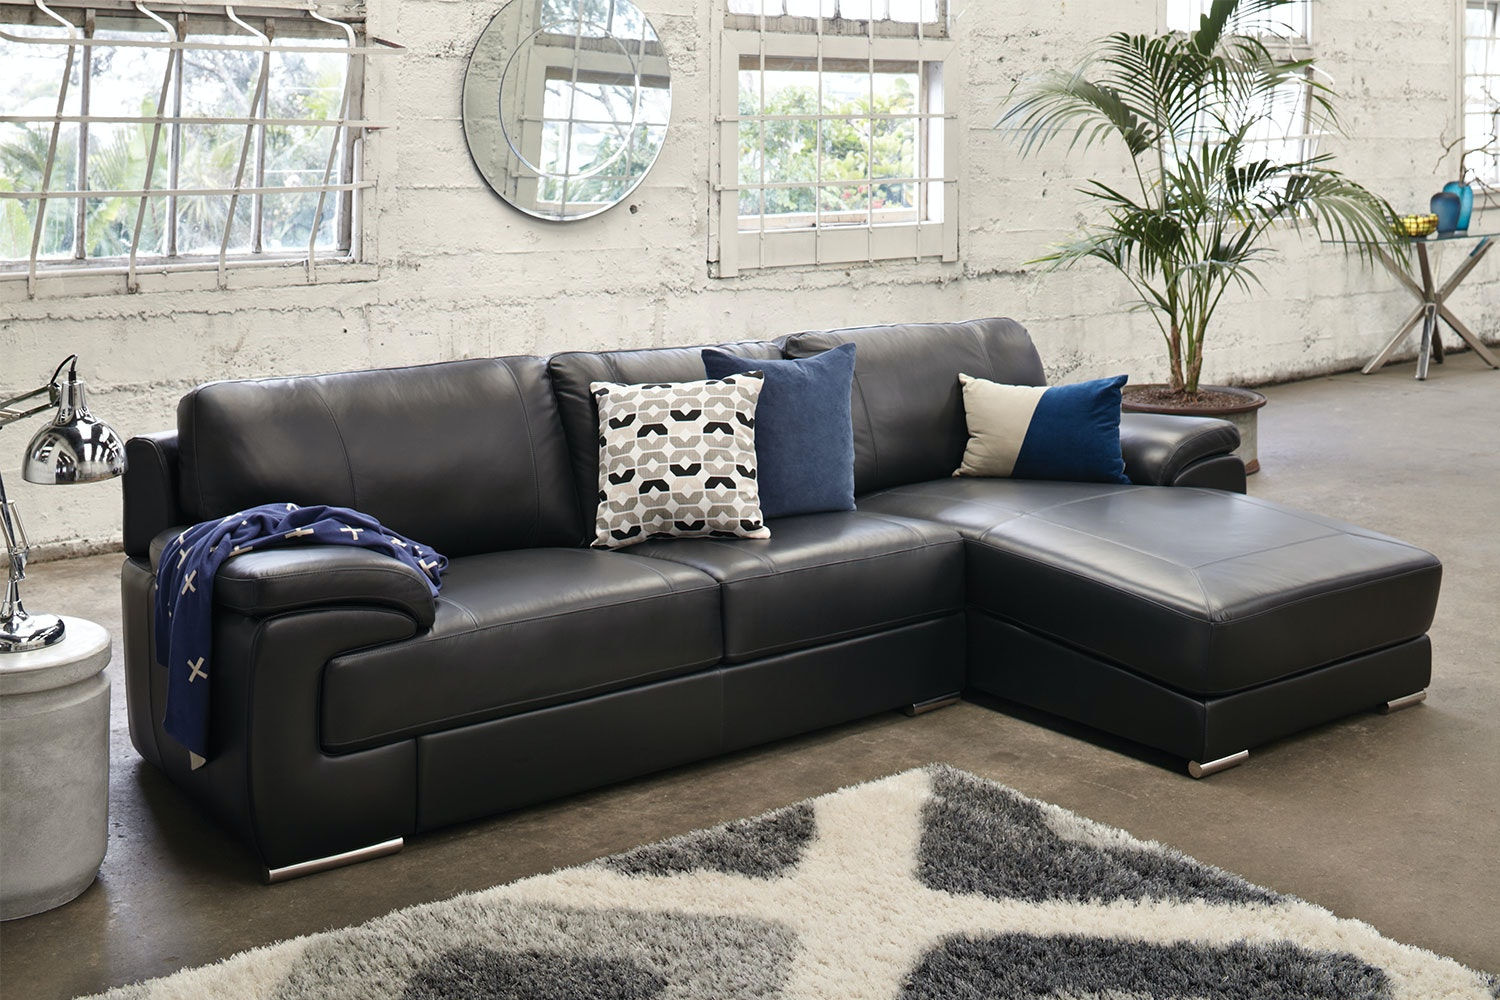 Titus 3 Seater Leather Sofa With Chaise Part 38